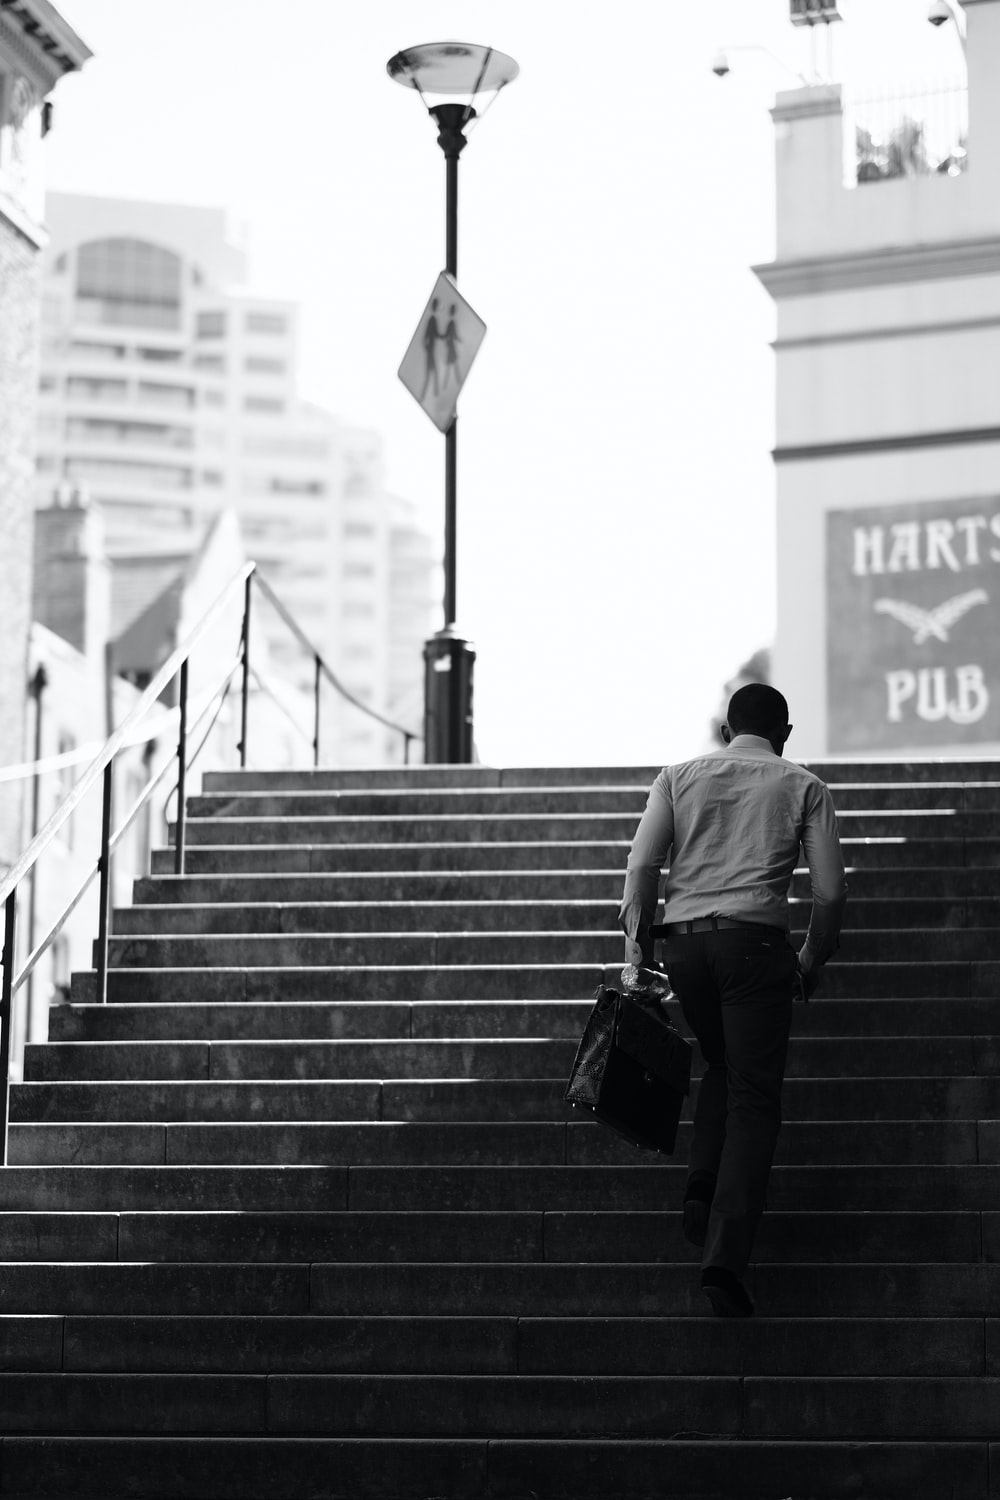 man in black t-shirt and black pants walking on stairs